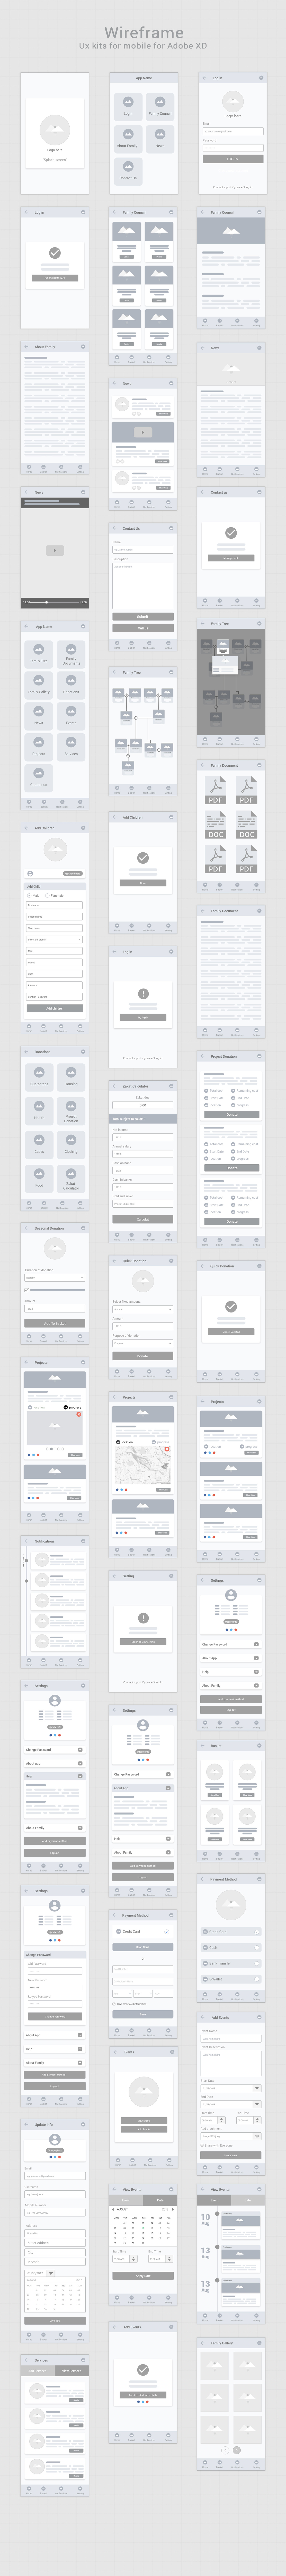 Free Wireframe Kits - This is going to save you time and it will help you to impress your clients with great looking wireframes.